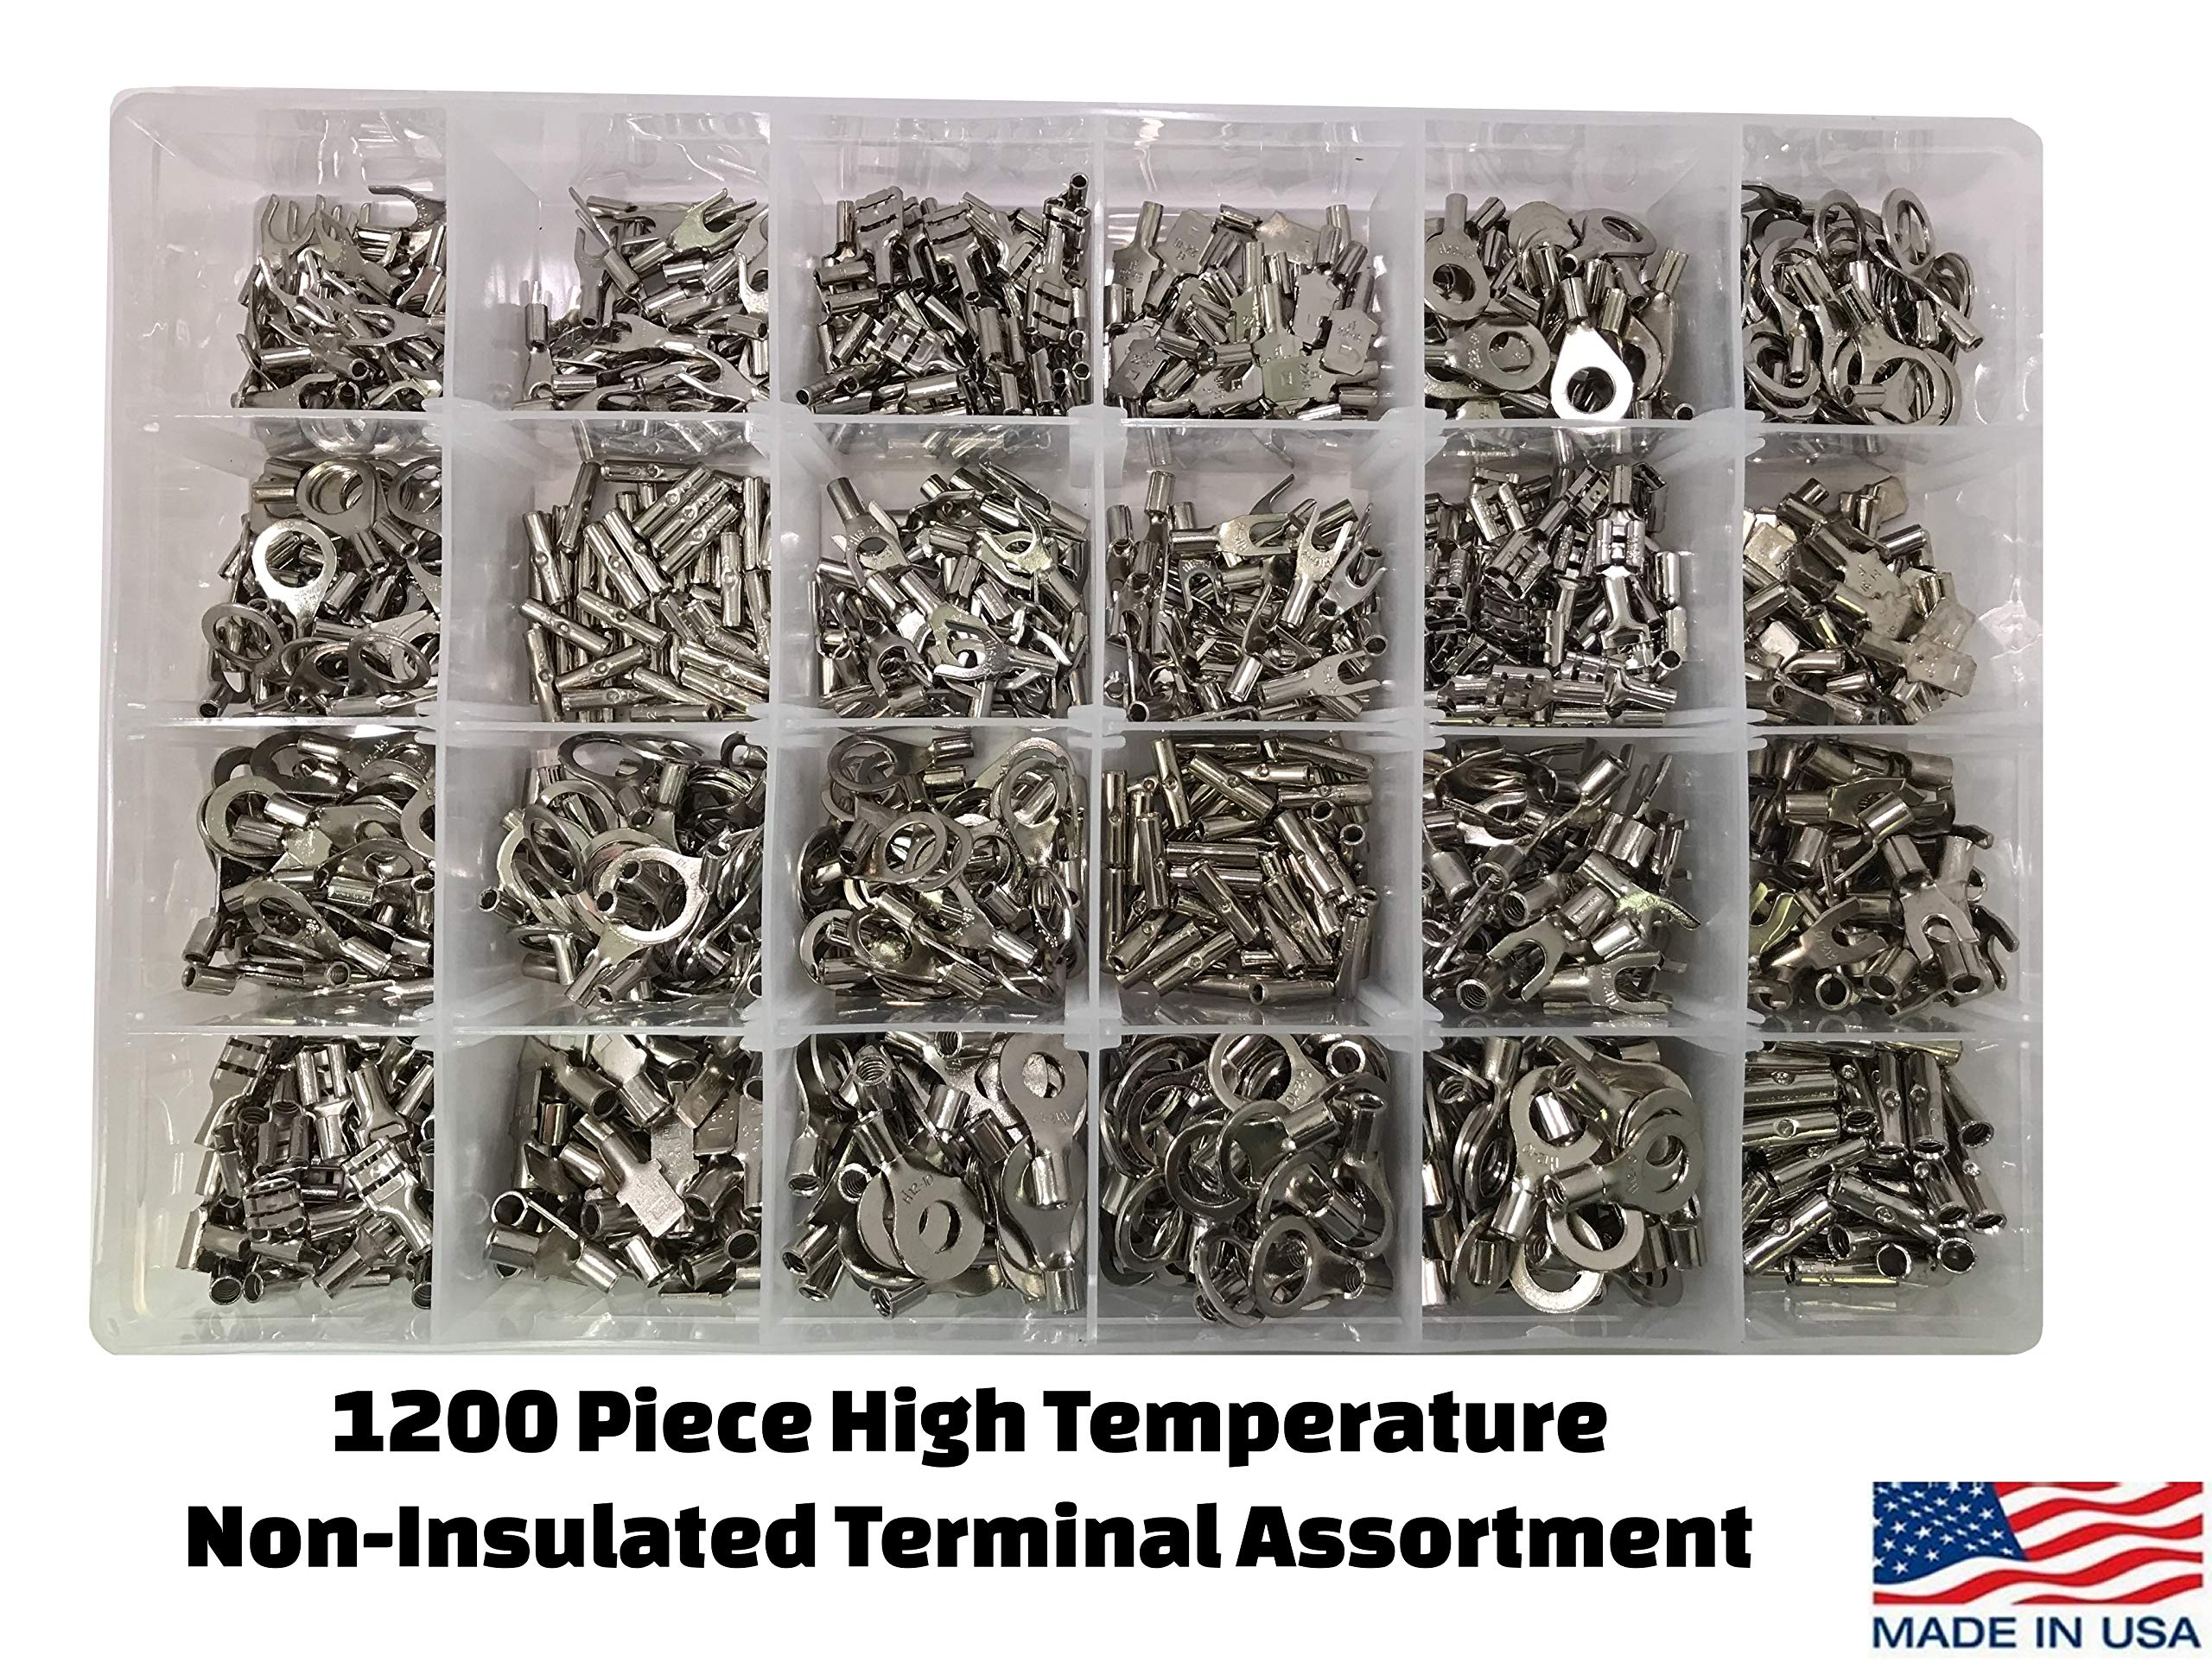 1200 Piece High Temperature Non-Insulated Wire Terminal Connector Assortment Kit - Ring, Spade, Butt Splice, Female & Male Quick Connectors